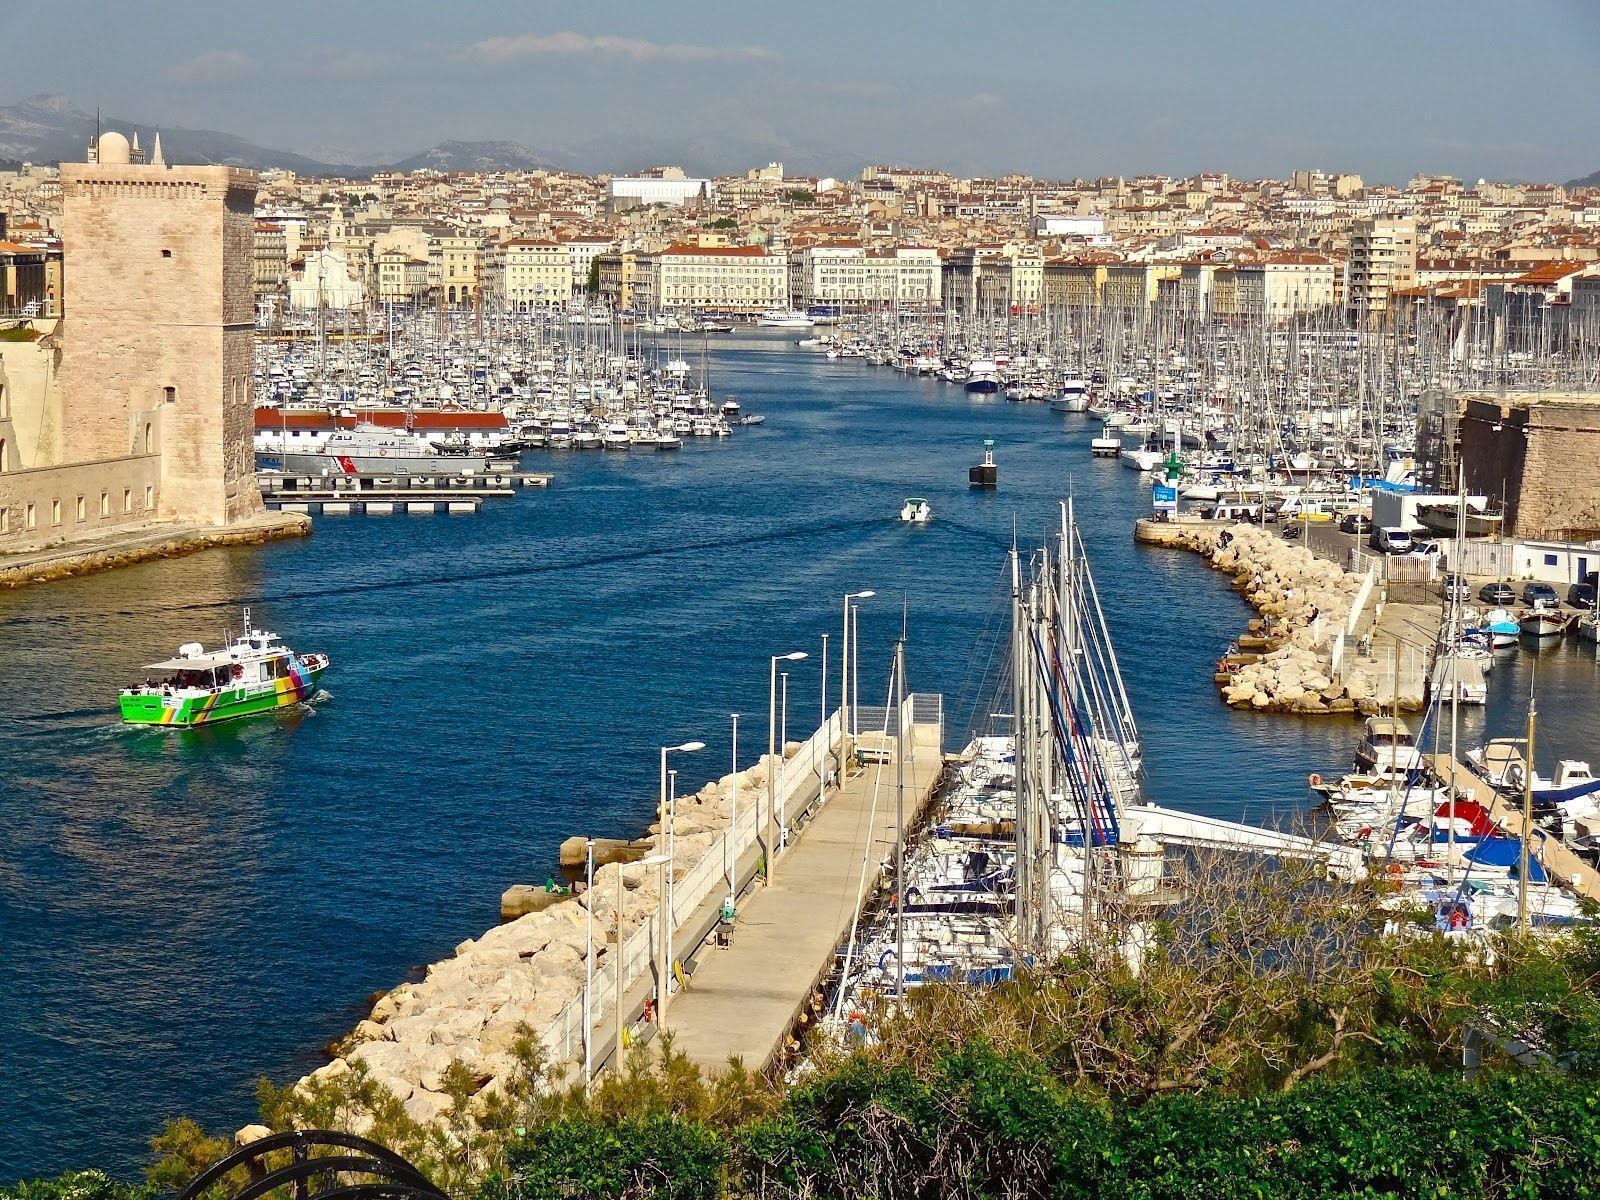 Bay in Marseille, France wallpapers and image